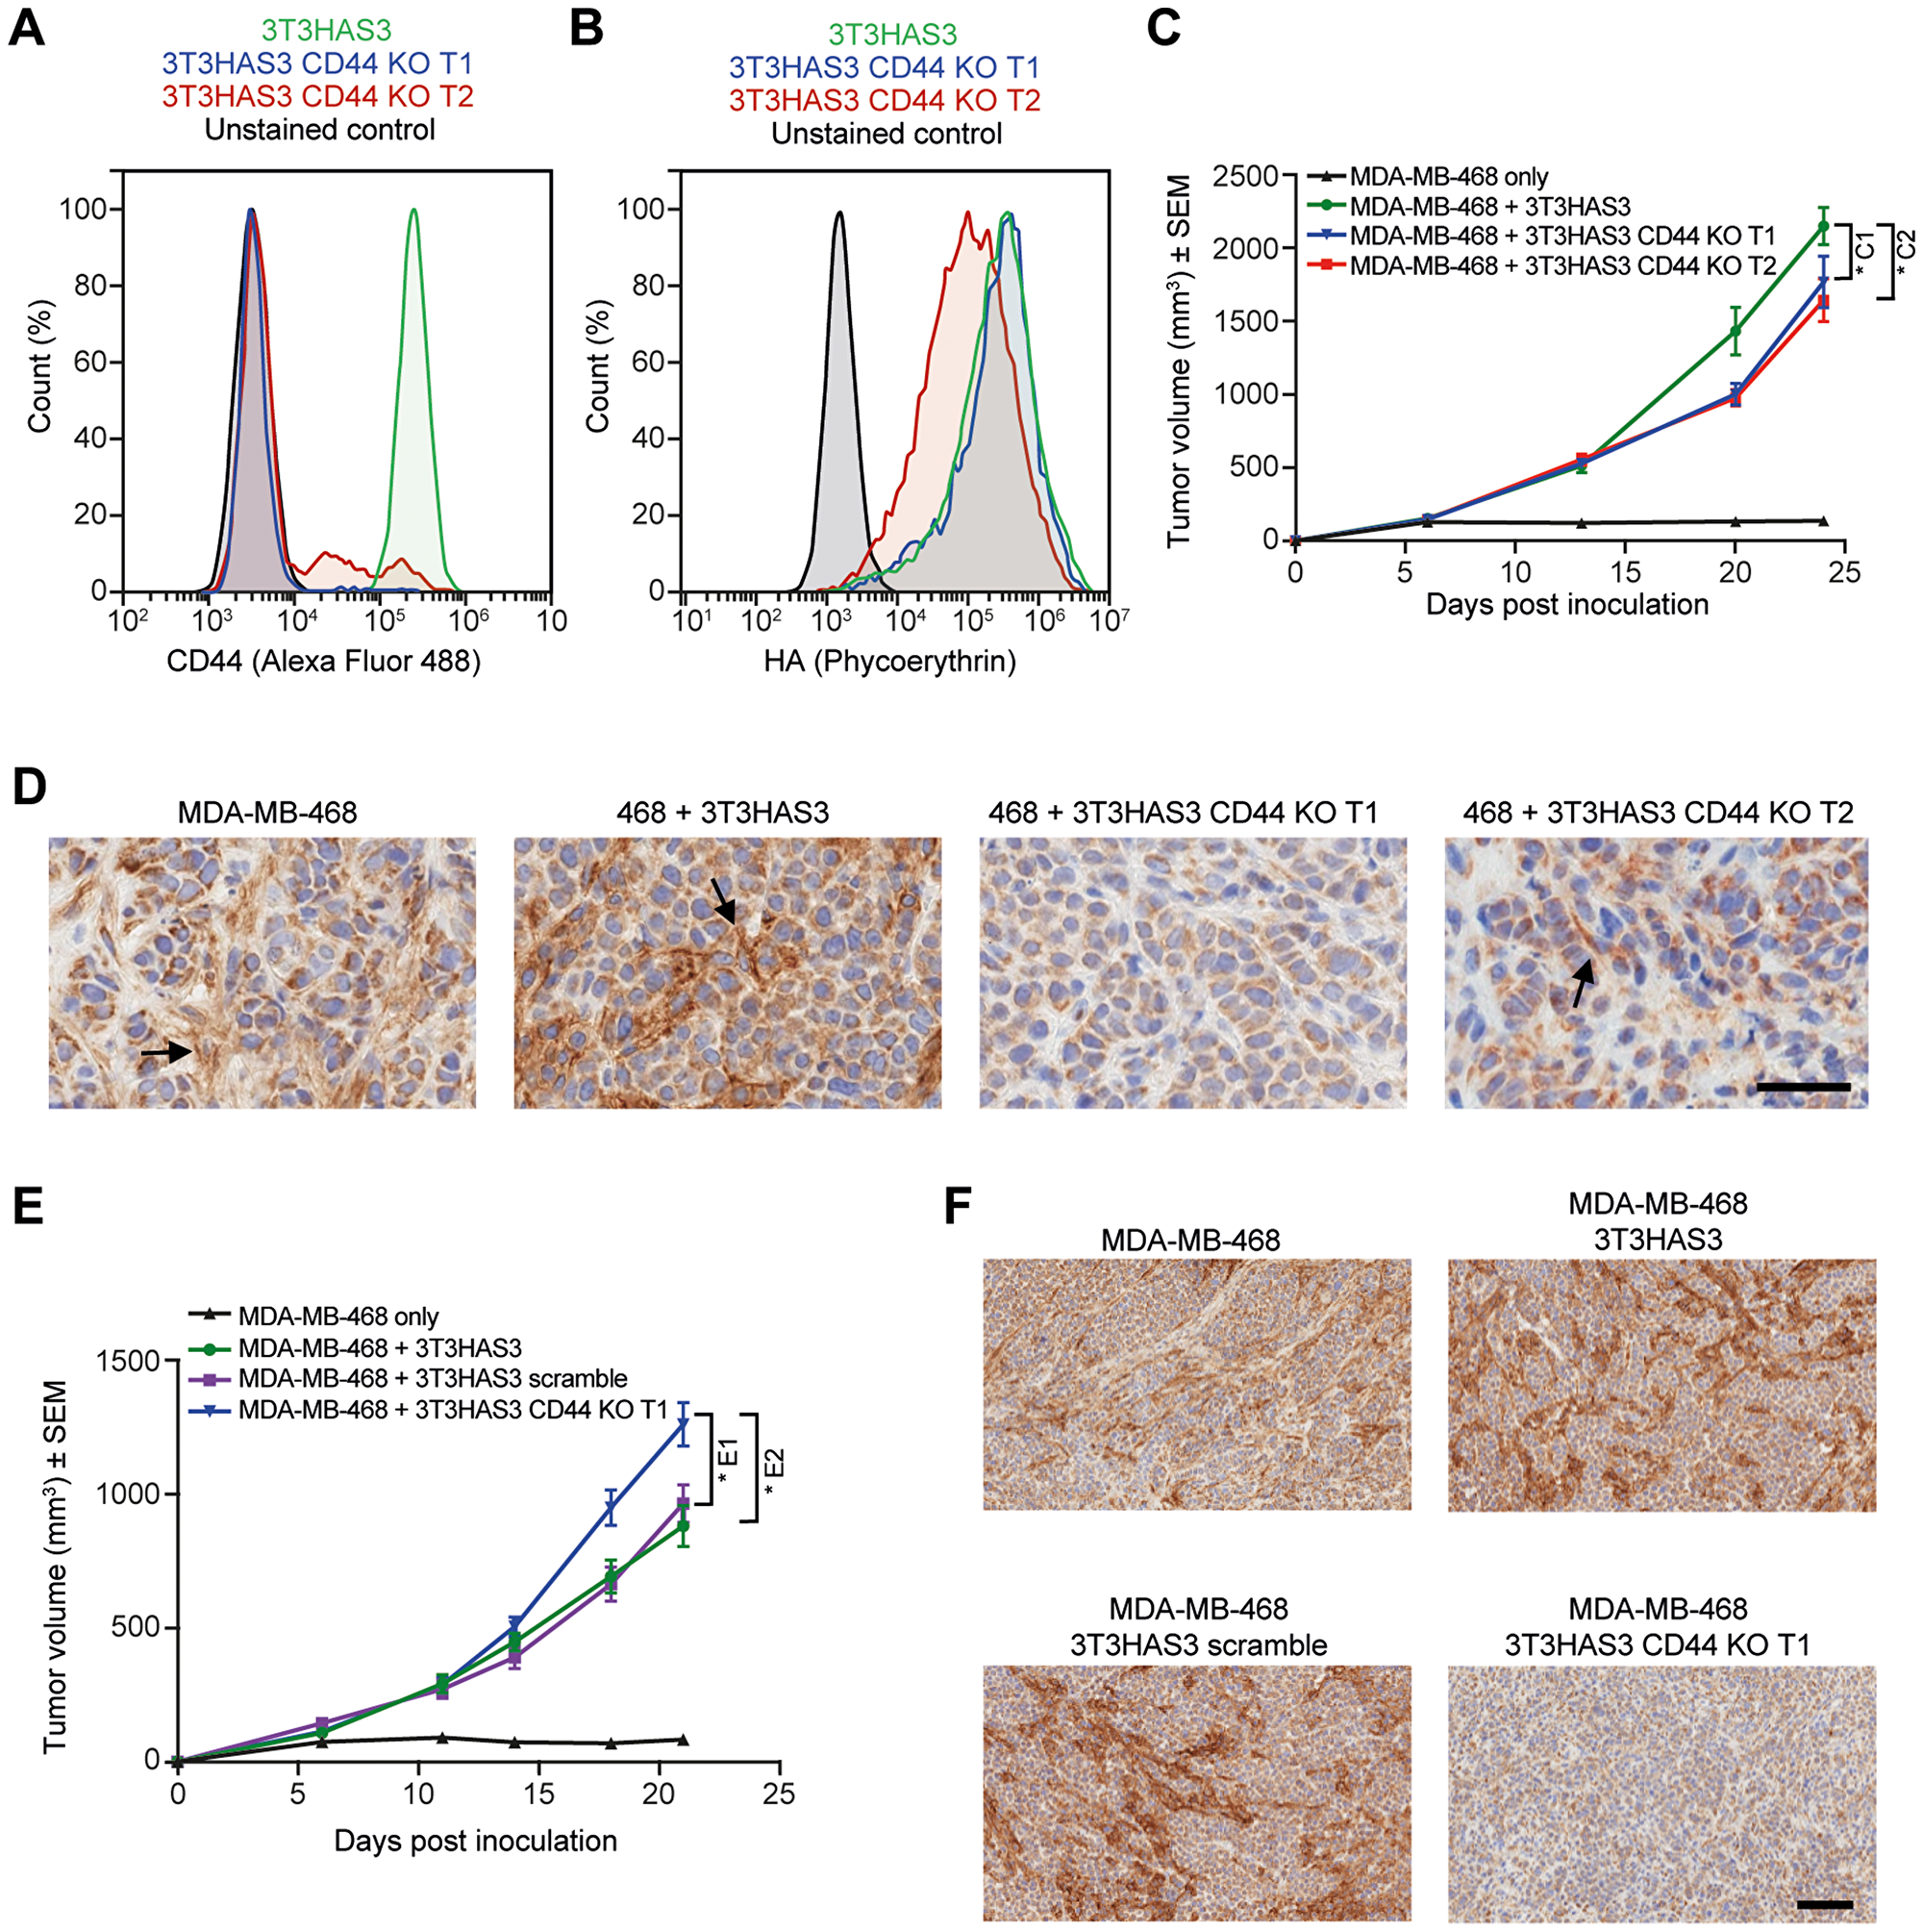 Tumor growth in the breast cancer co-graft model with HA-accumulating stroma was independent of CD44 expression in 3T3HAS3 fibroblast cells.